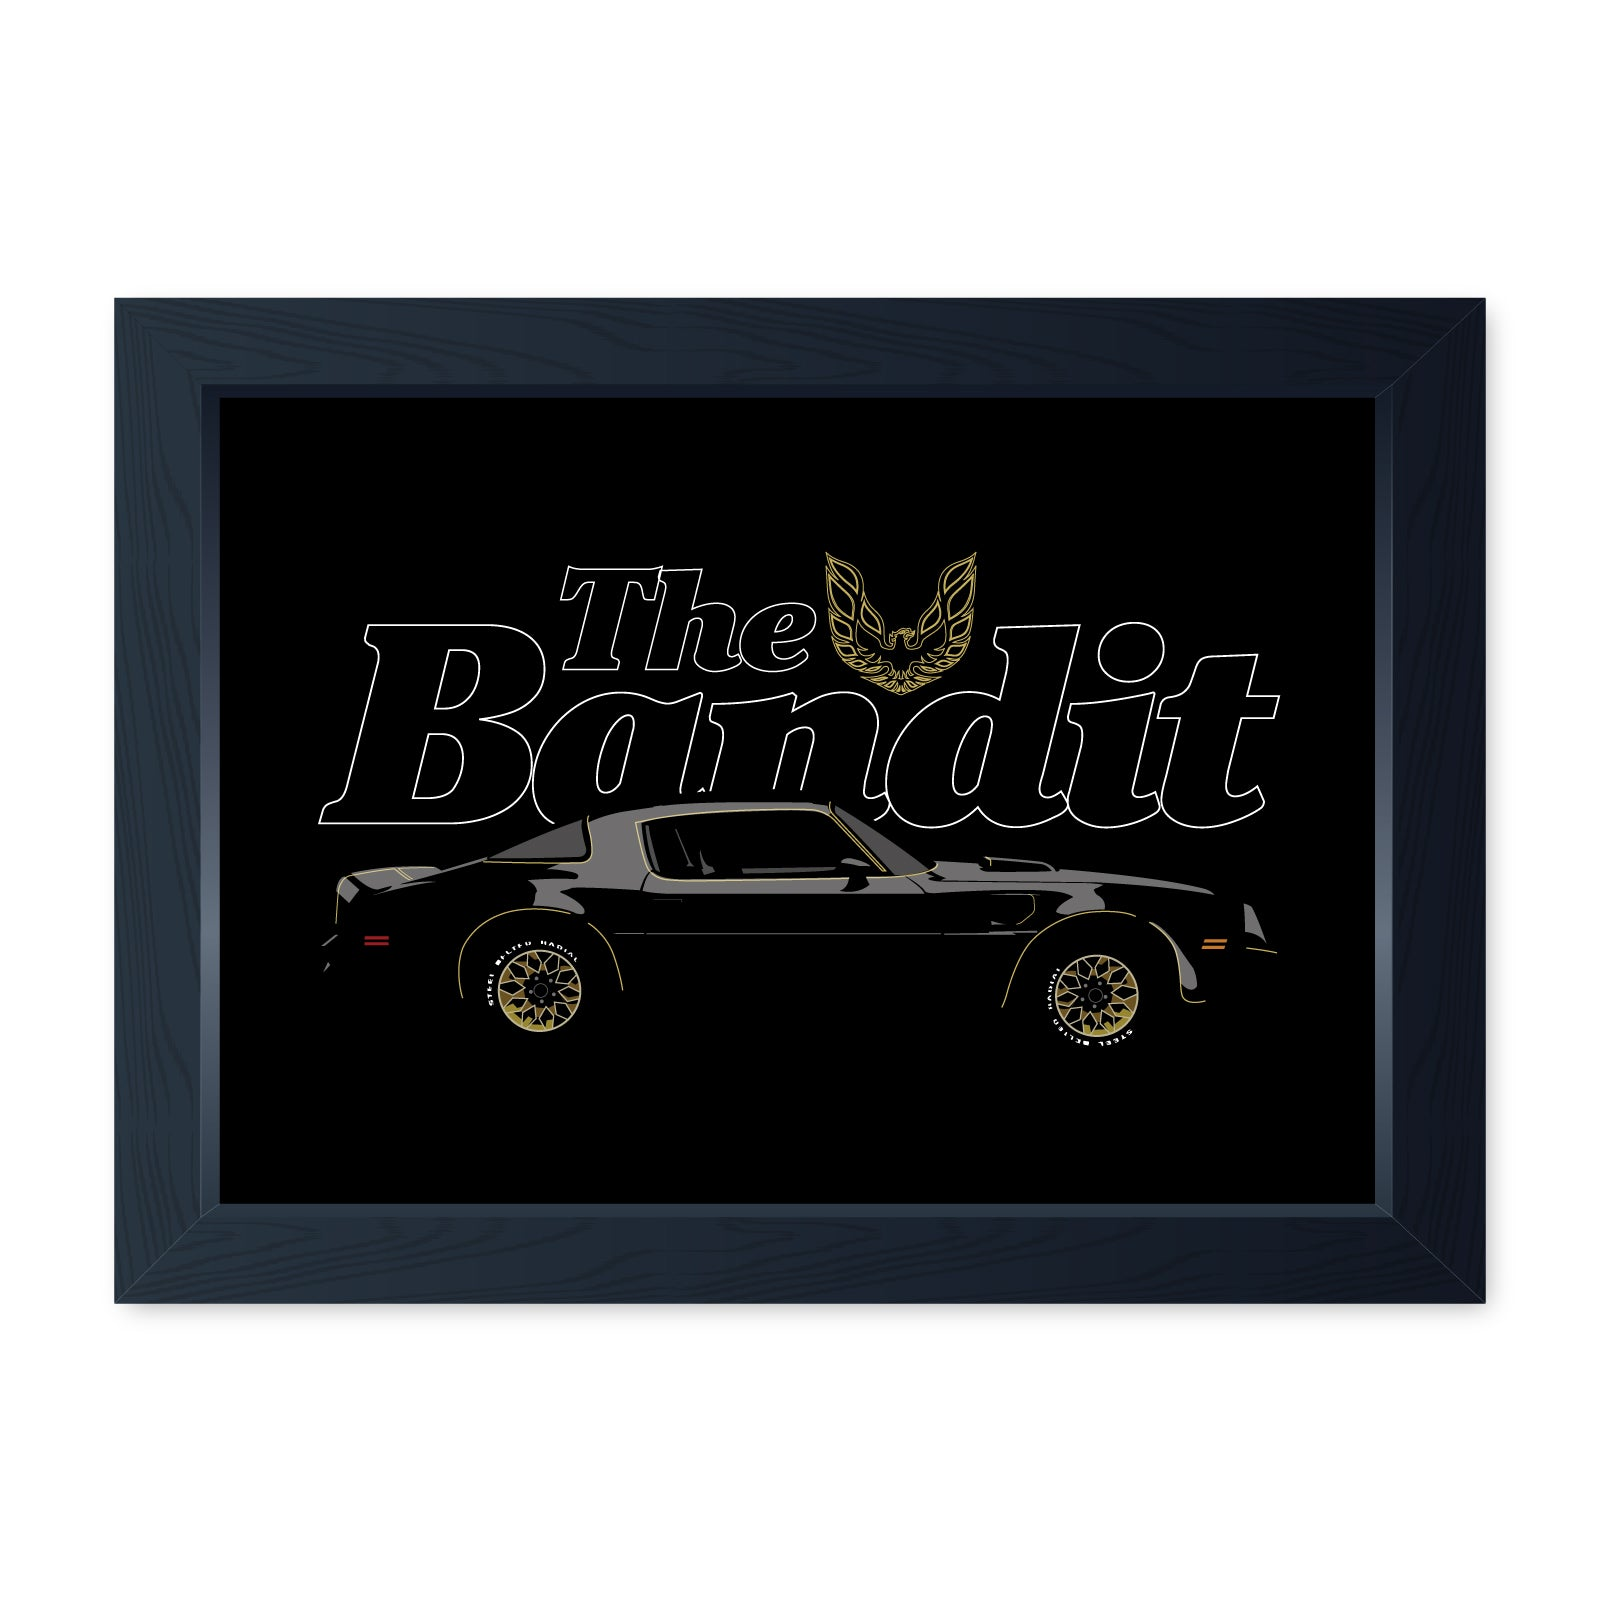 The Bandit Framed Print - Home Decor Kitchen Bathroom Man Cave Wall Art